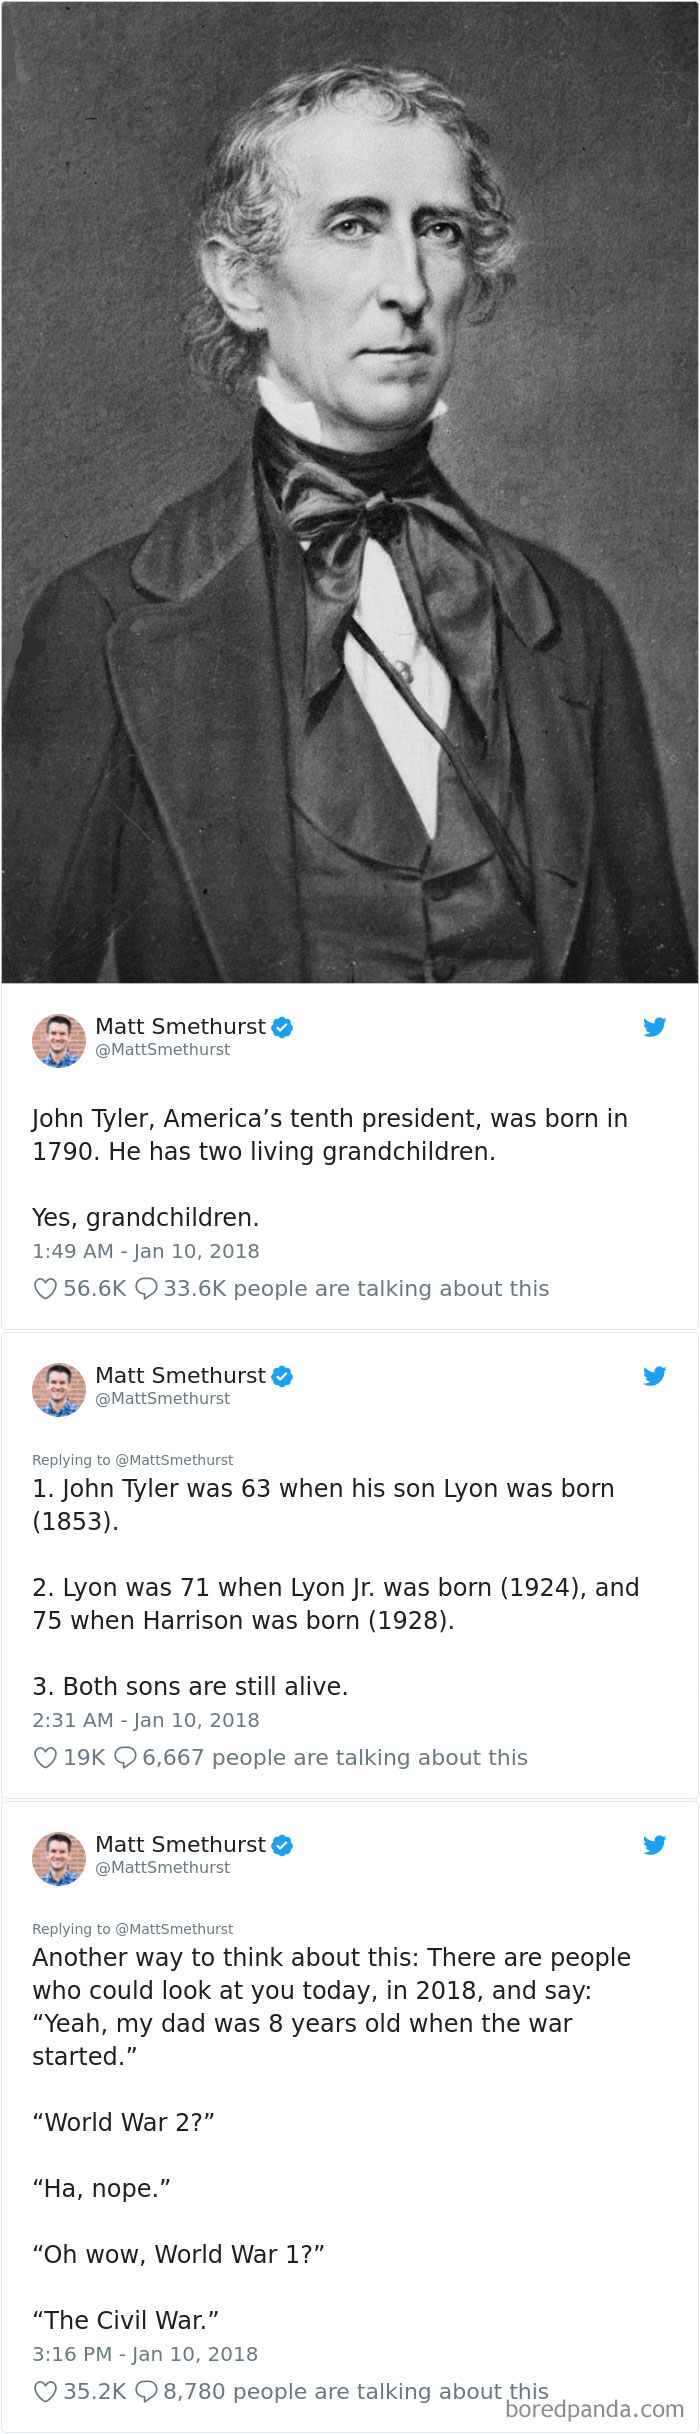 John Tyler, America's Tenth President, Was Born In 1790. He Has Two Living Grandchildren. So This Means...